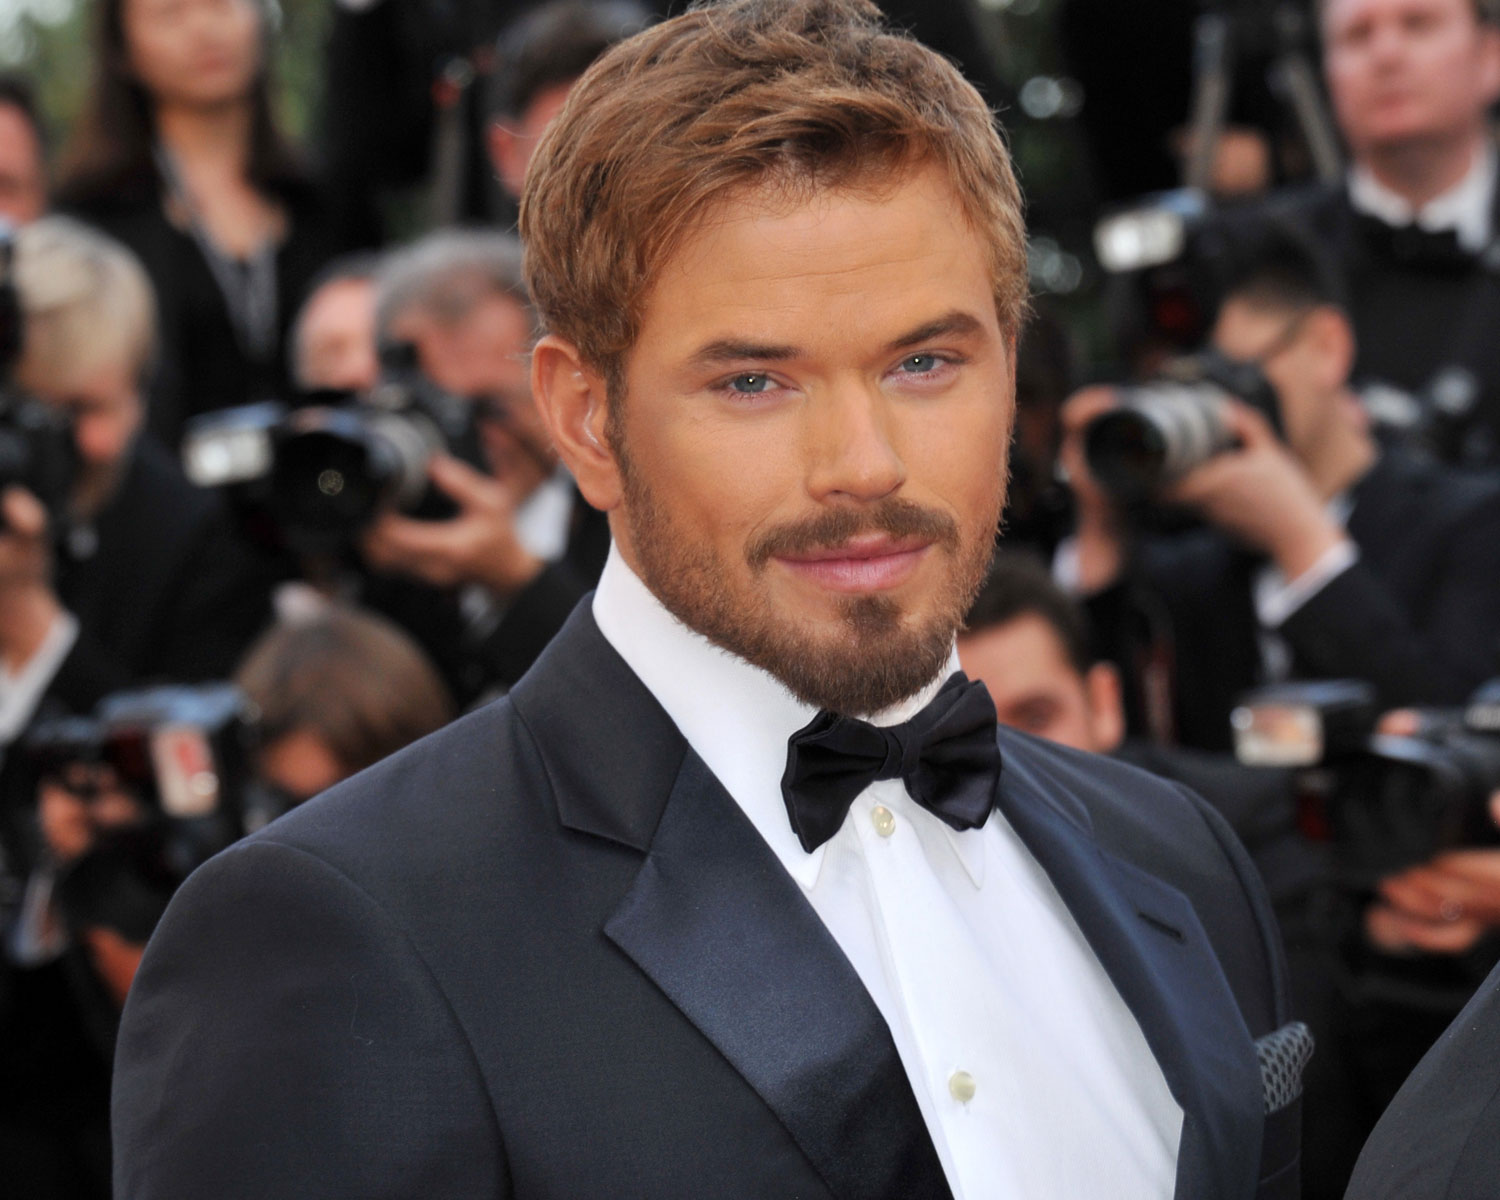 Kellan Lutz Shares The First Photo From His Wedding To